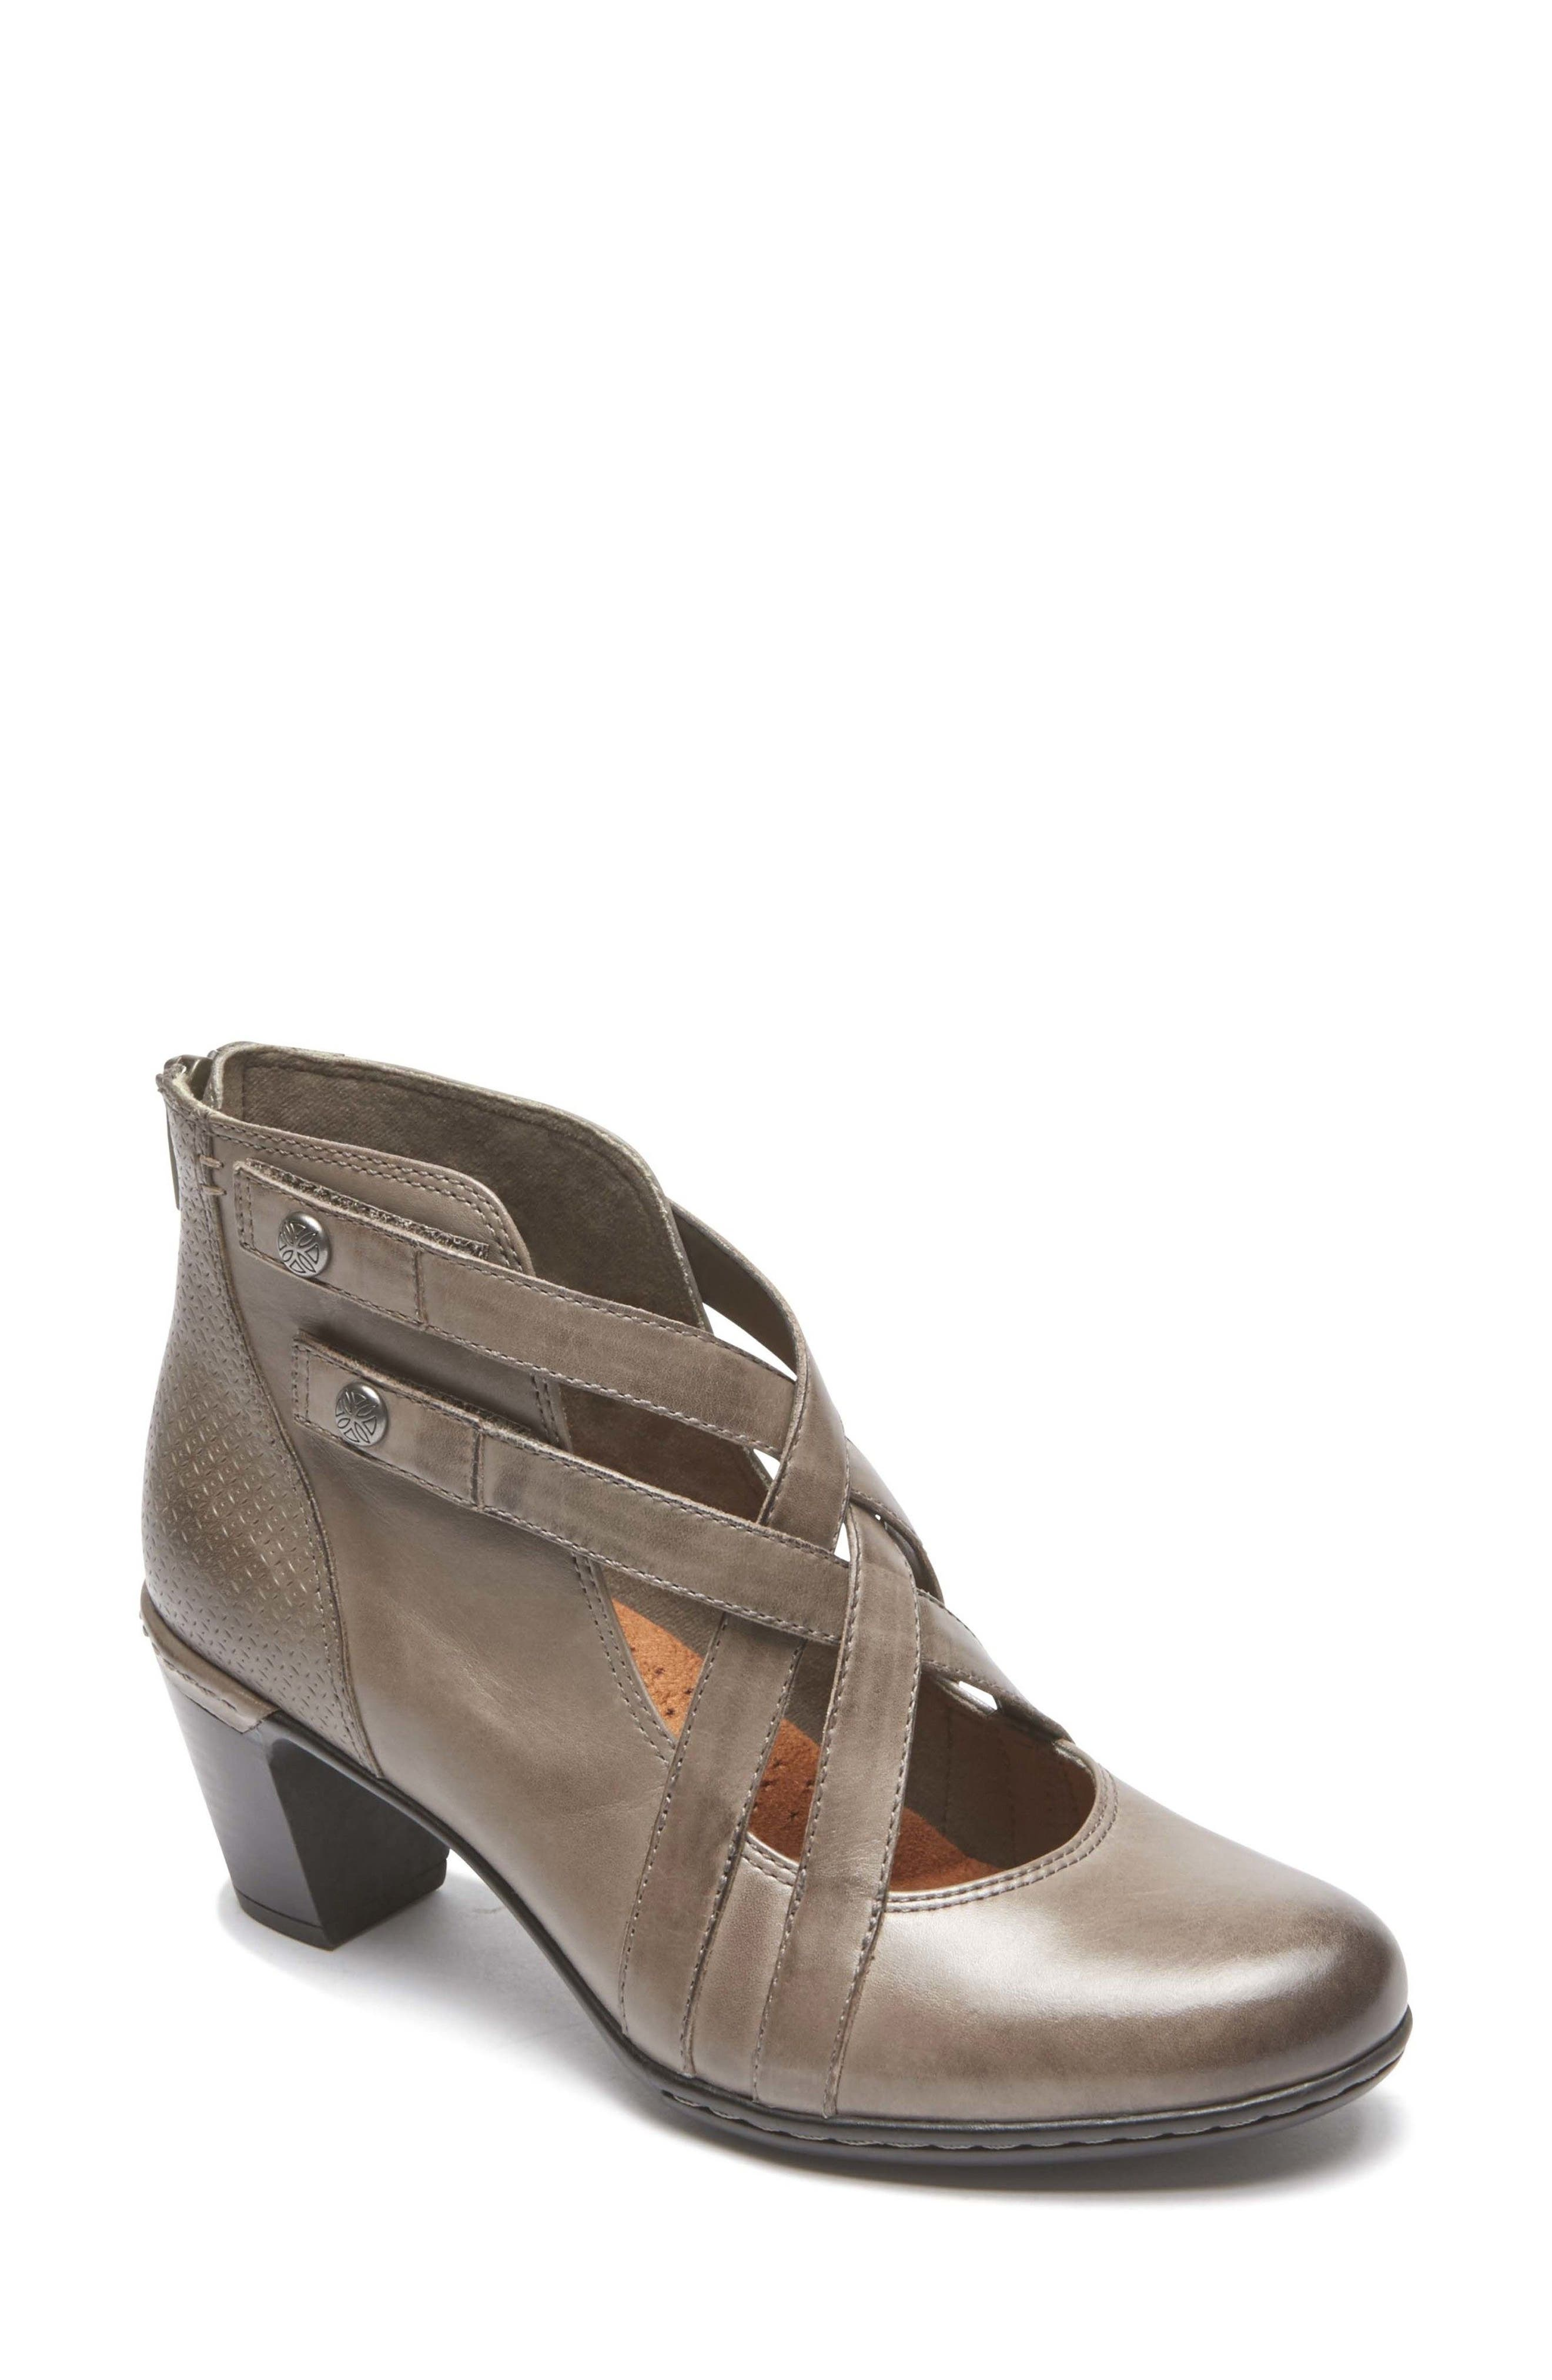 ROCKPORT COBB HILL,                             Rashel X-Strap Pump,                             Main thumbnail 1, color,                             STORMY GREY LEATHER